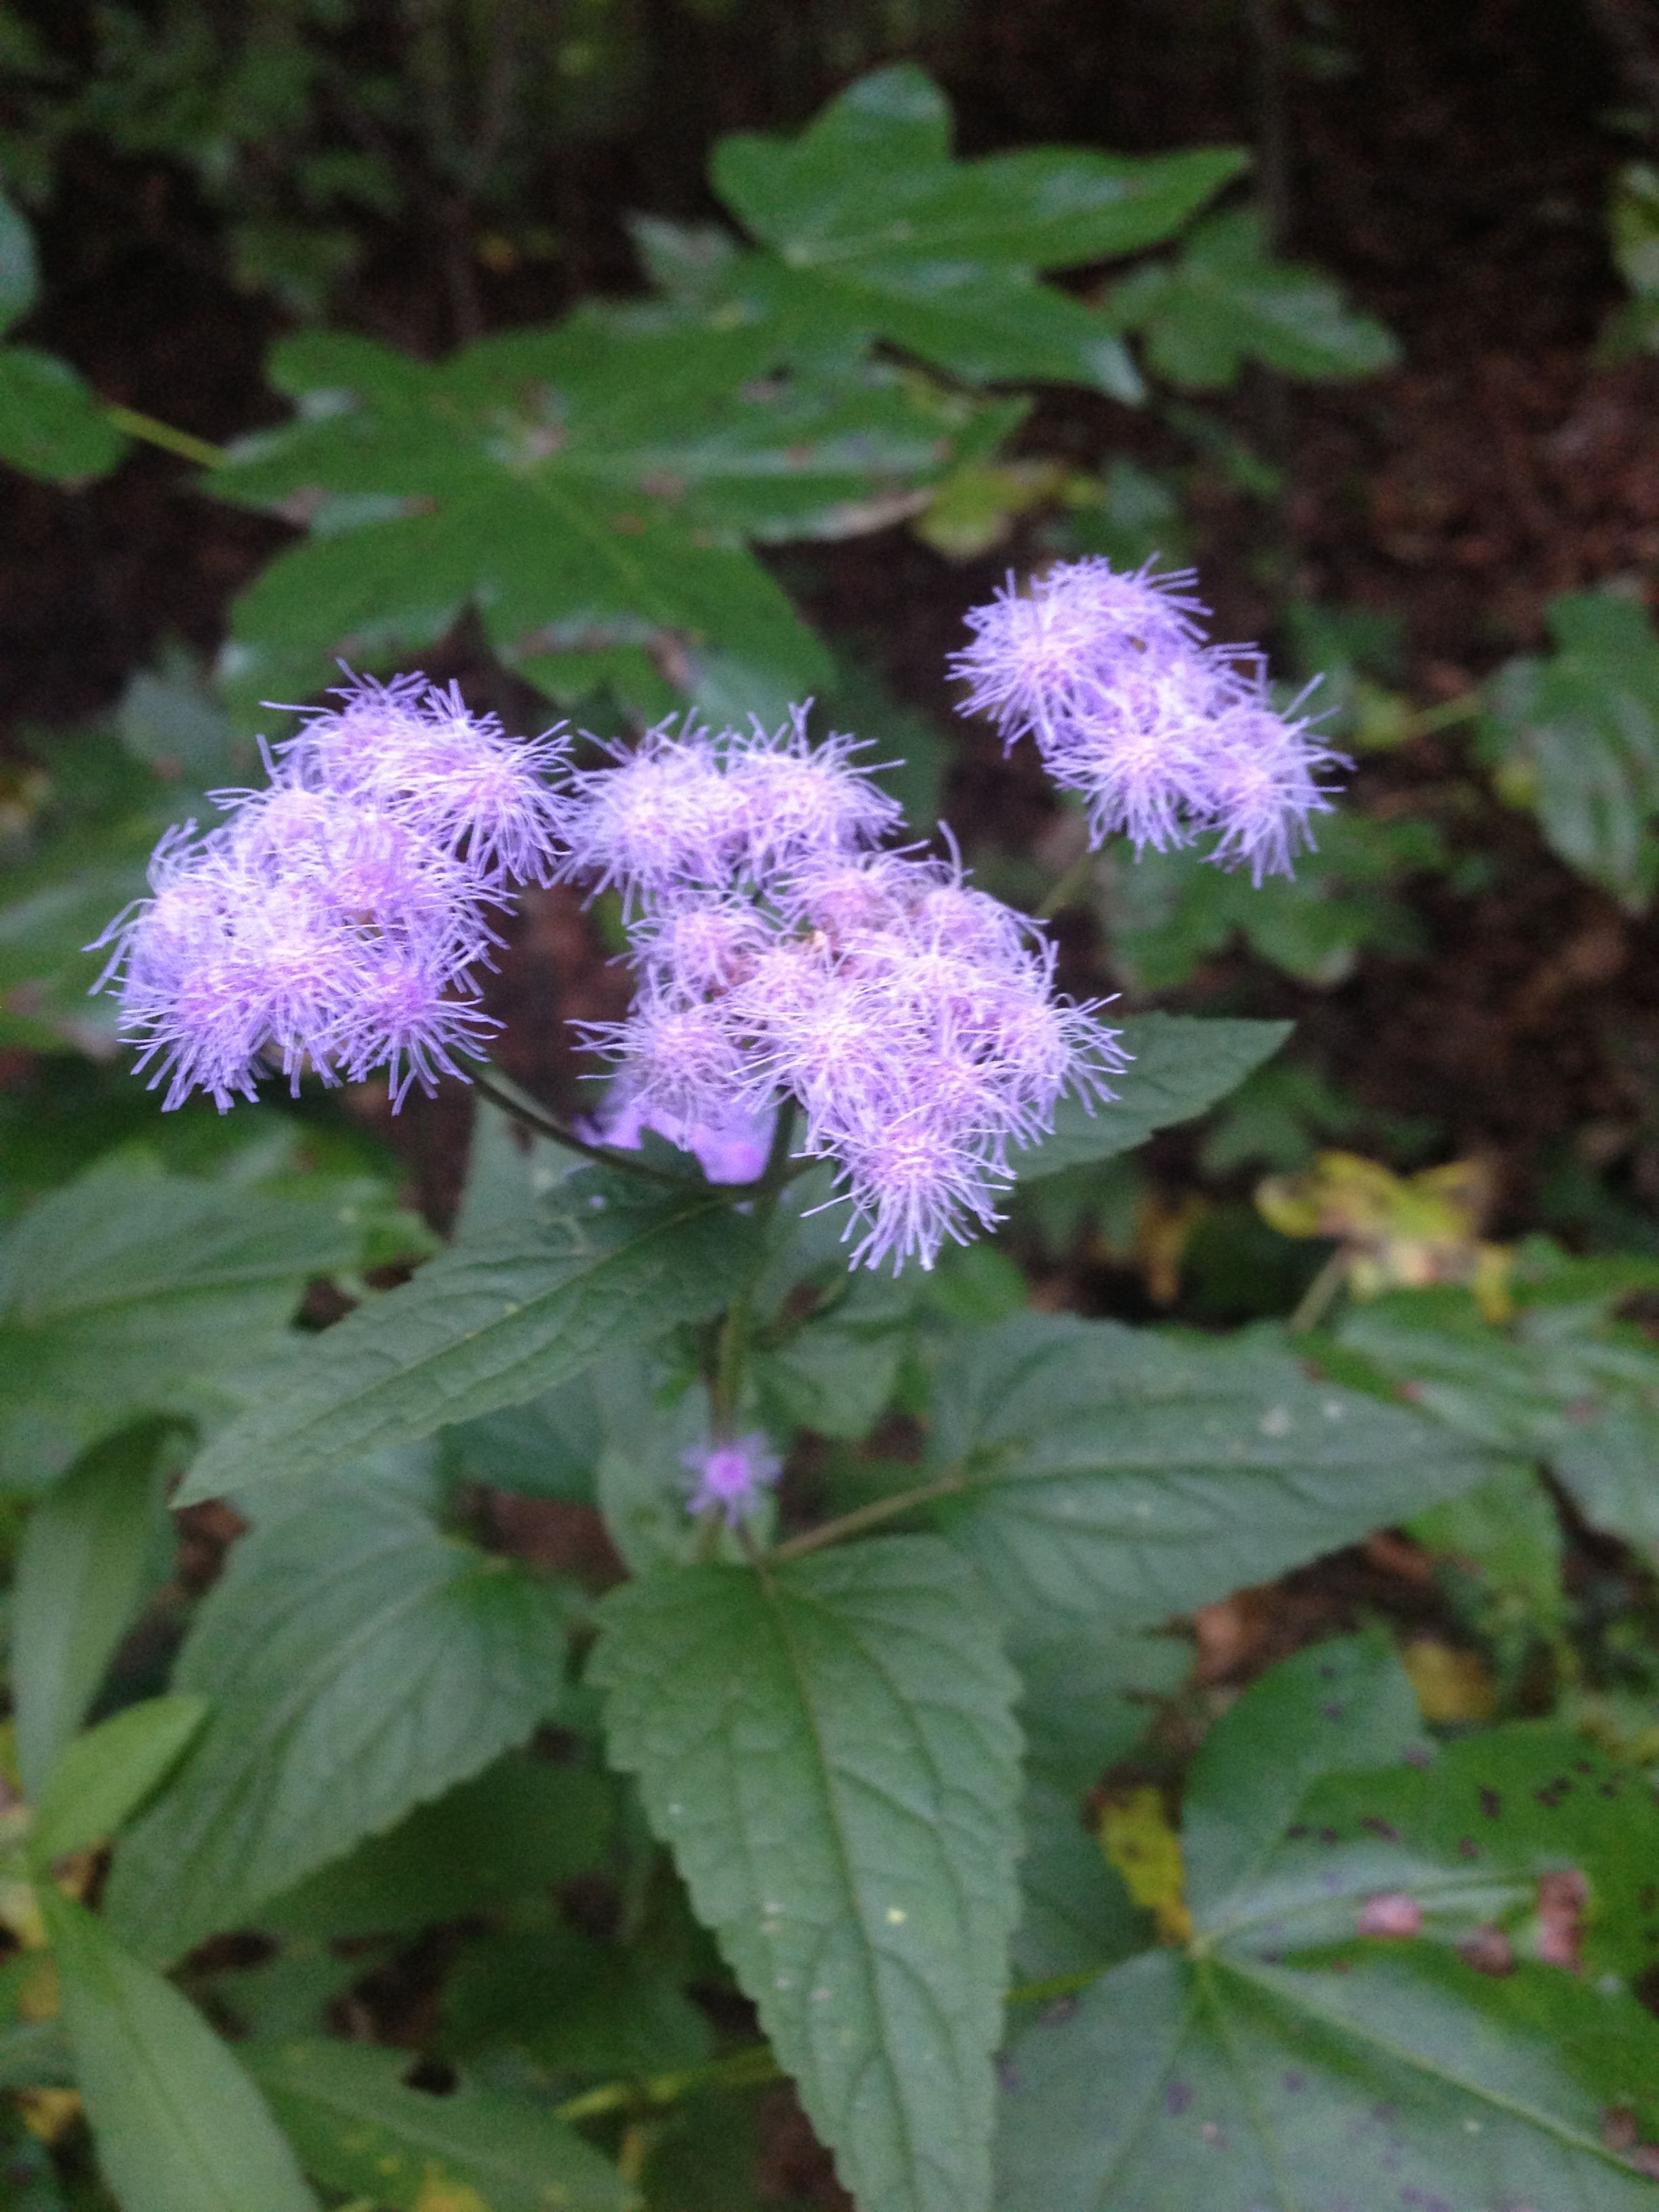 Wild Ageratum Grown In Full Sun Or Part Shade Fuzzy Blue Flowers Top Bright Green Foliage For Several Weeks In Late Blue Flower Top Blue Flowers Wild Flowers